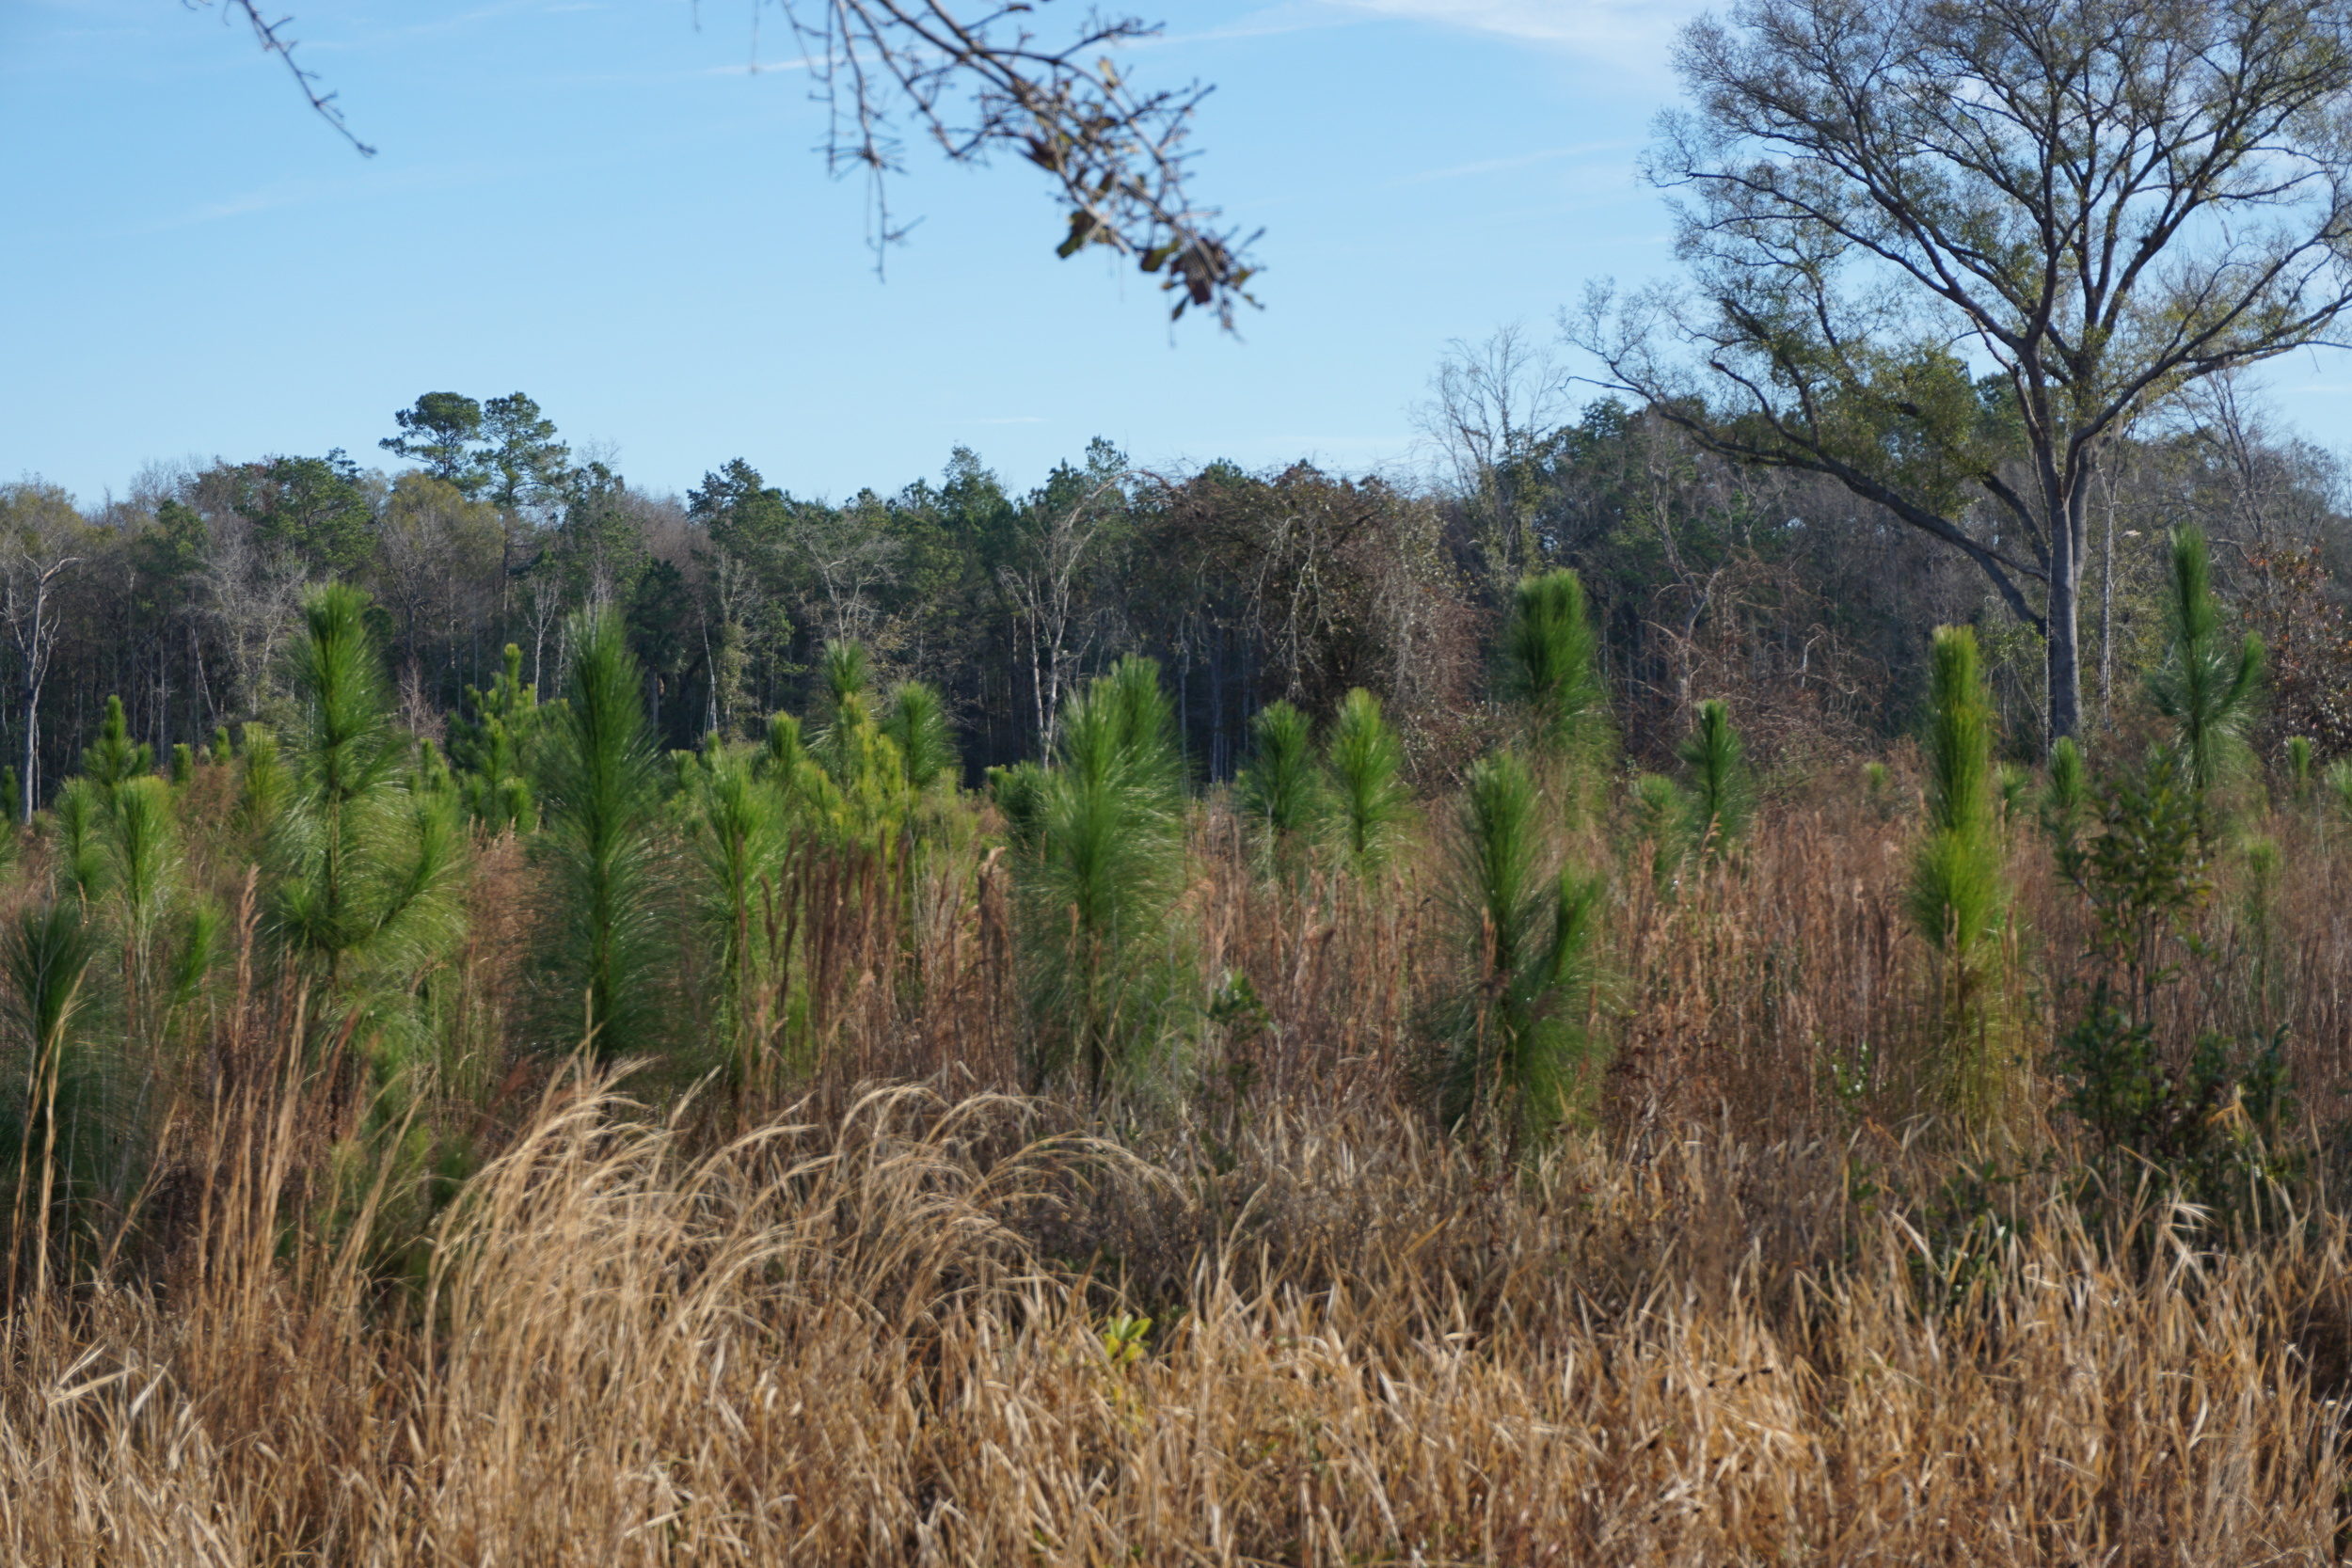 Adolescent longleaf pines on the Williams property. Photo by DCW.